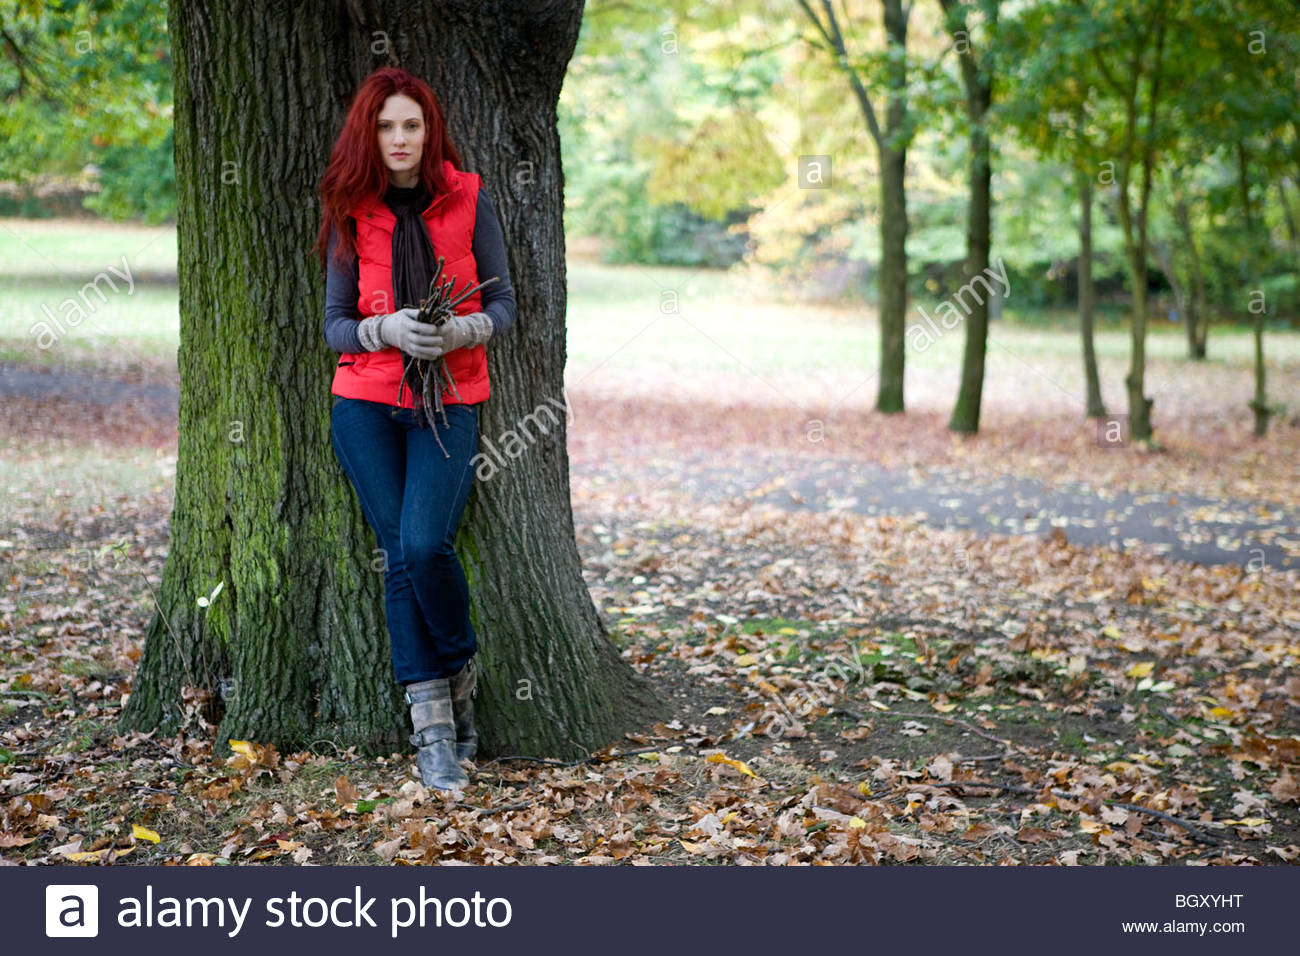 A young woman leaning against a tree, holding a handful of twigs - Stock Image